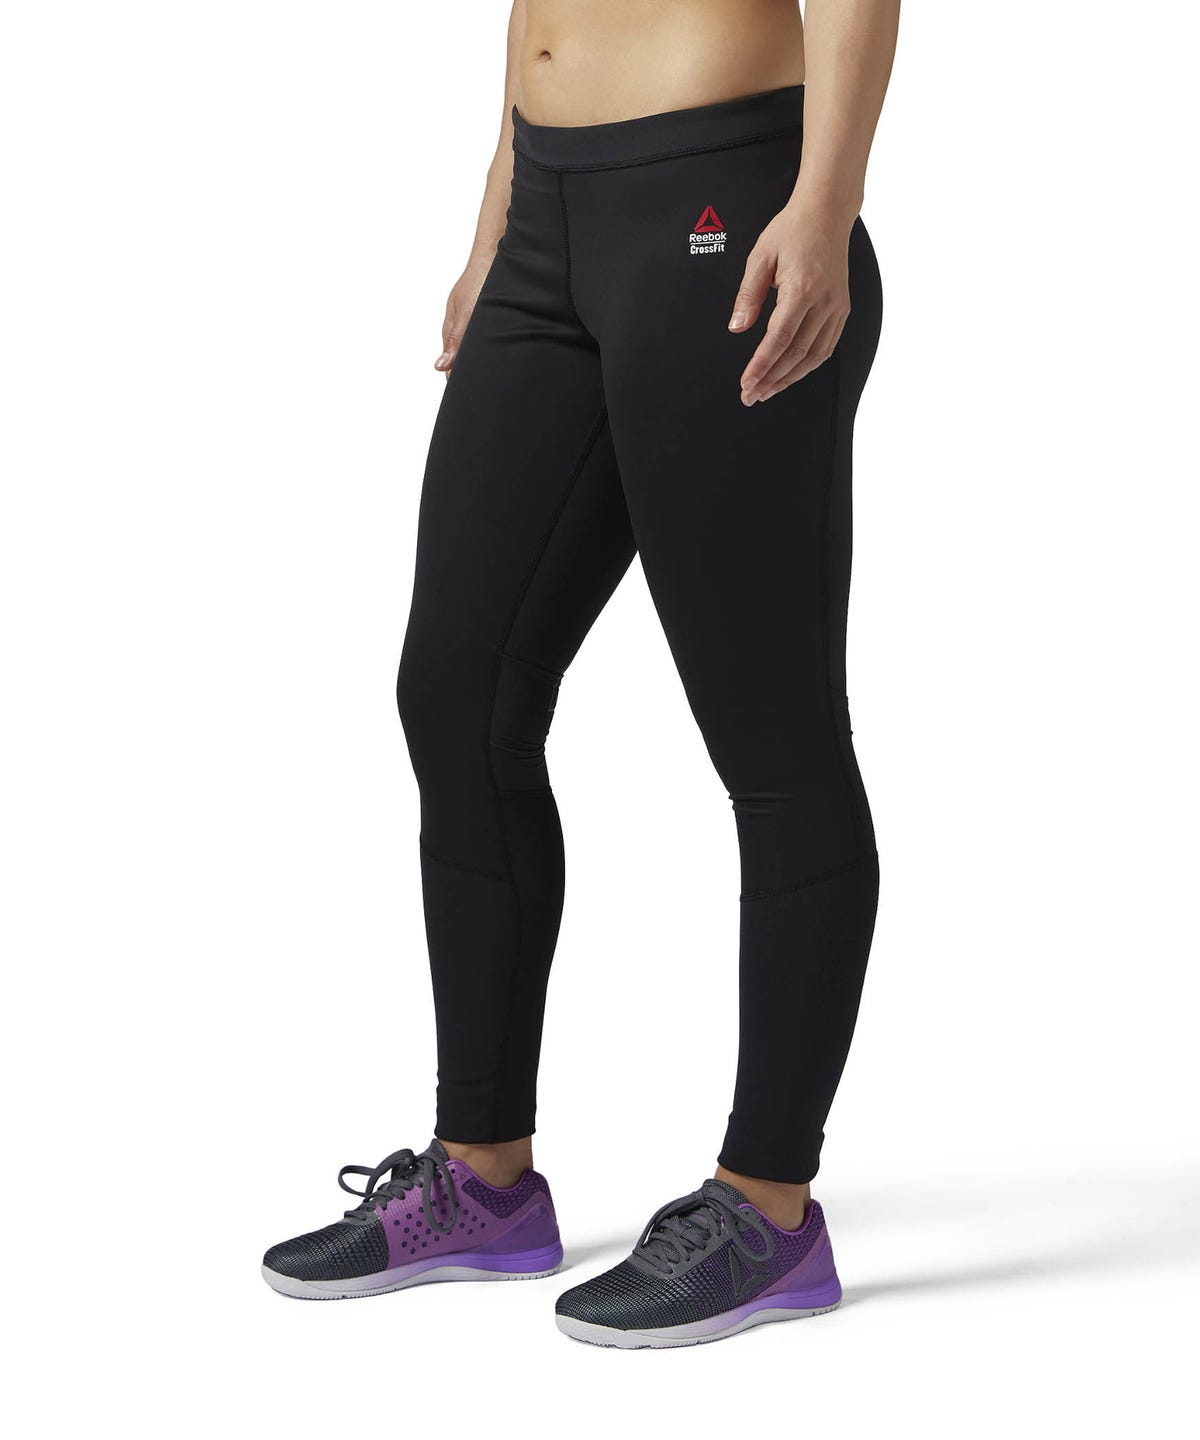 Best Warm Leggings For Winter Workouts Clothes, Women